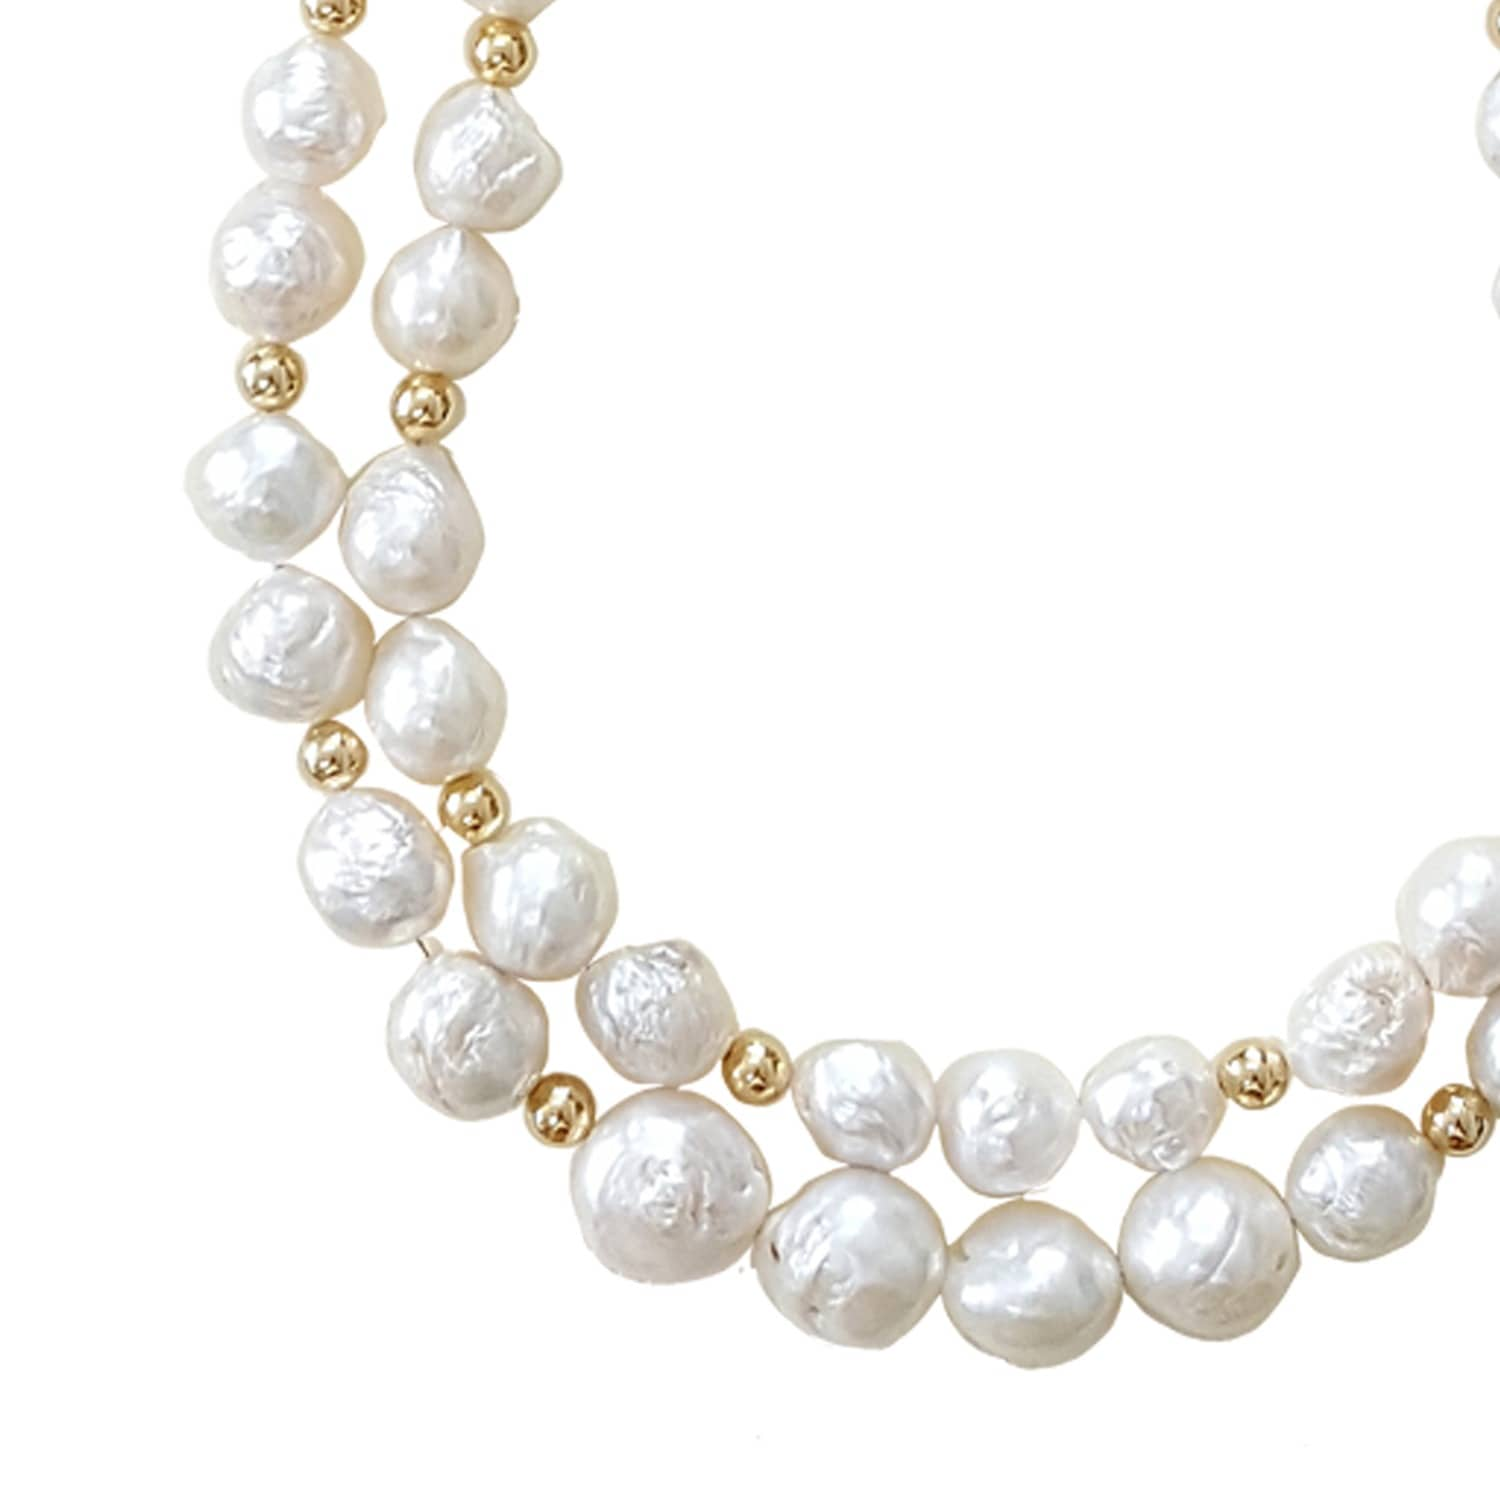 ig irregularly shaped fashion about la what you pearls pearl story primer should know